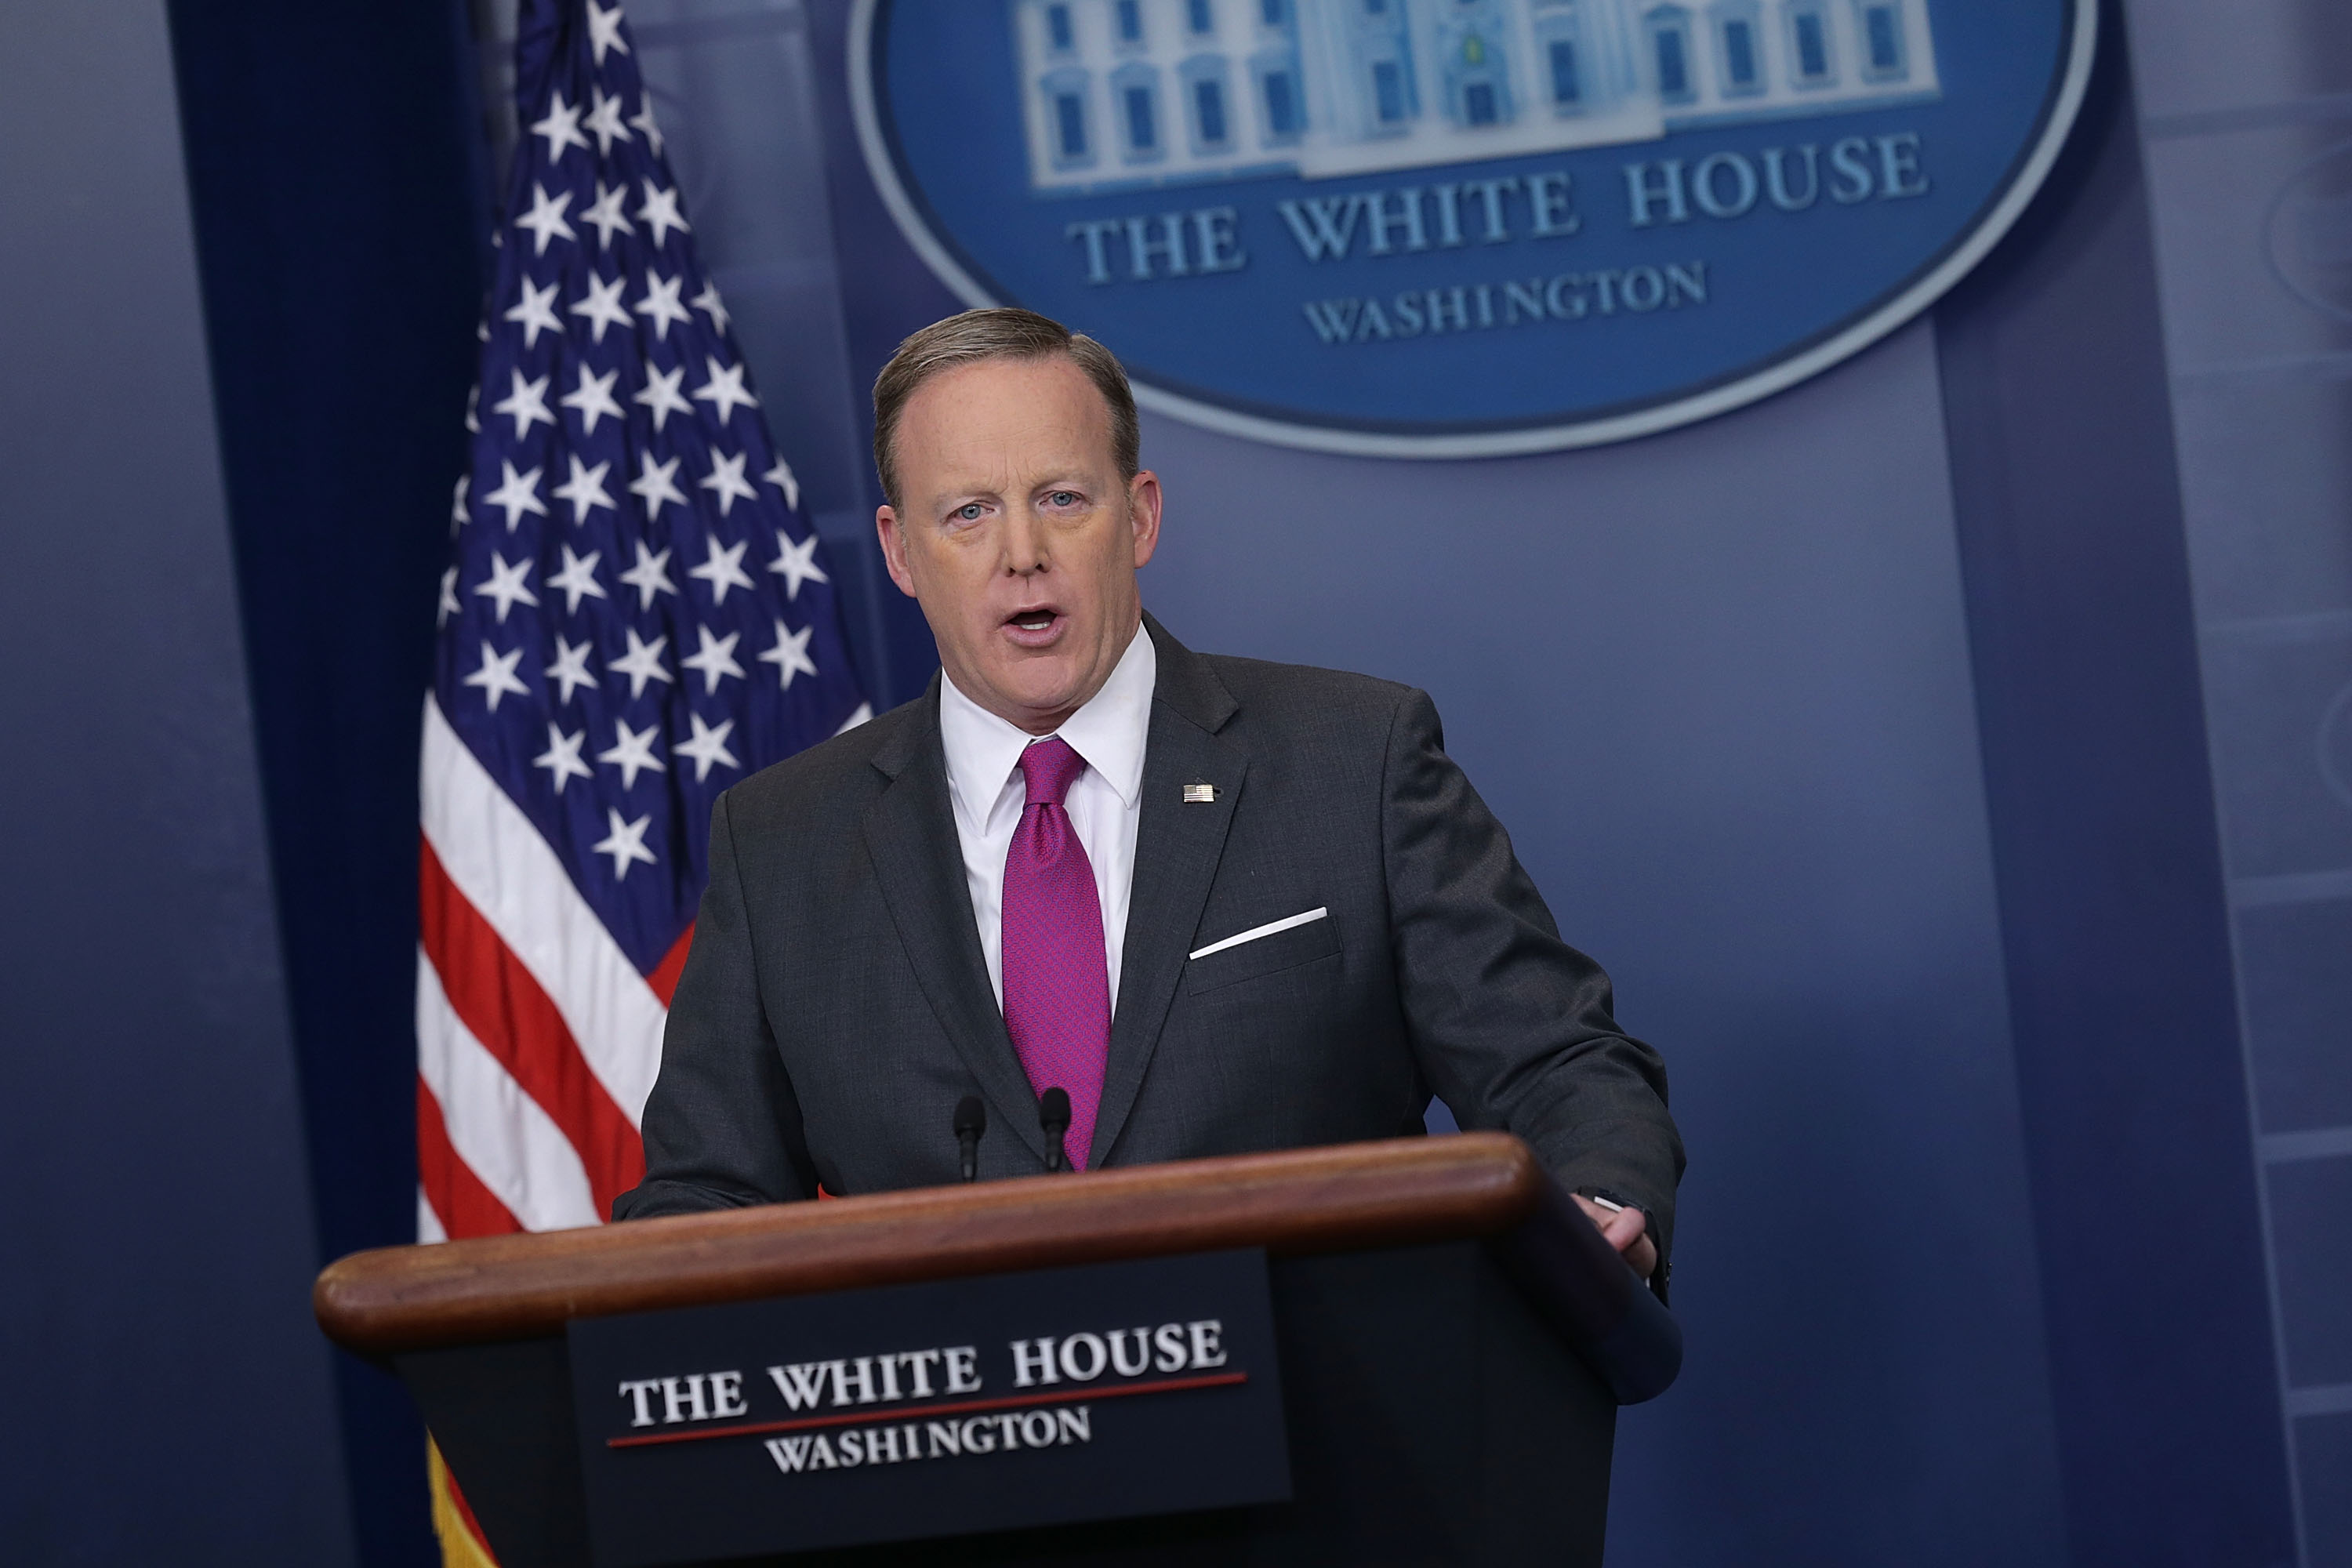 White House Press Secretary Sean Spicer speaks during the daily White House press briefing at the James Brady Press Briefing Room of the White House on March 9, 2017 in Washington, D.C.